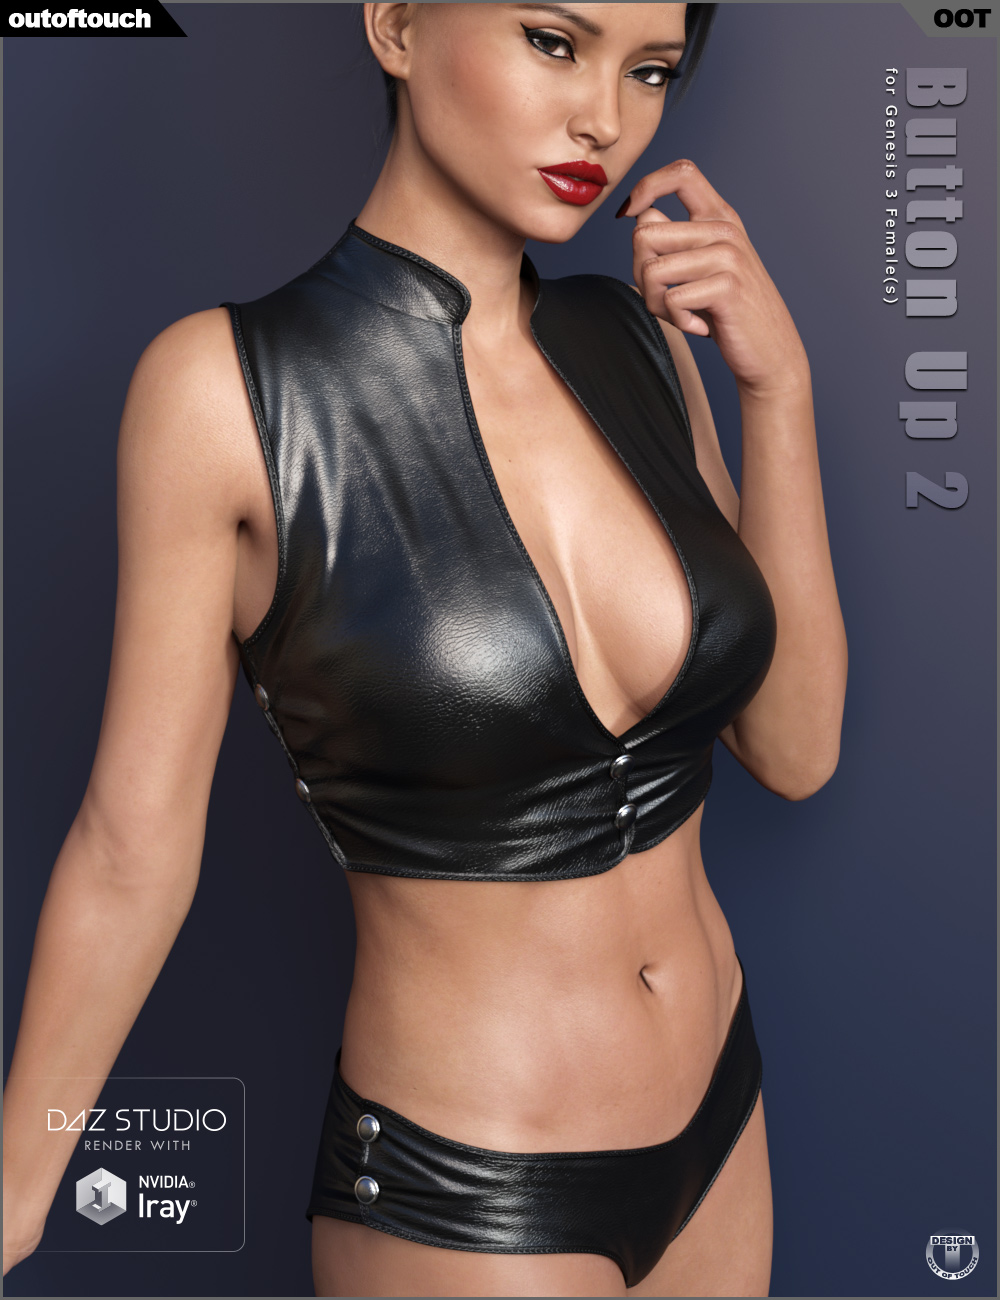 Button Up 2 Outfit for Genesis 3 Female(s) by: outoftouch, 3D Models by Daz 3D